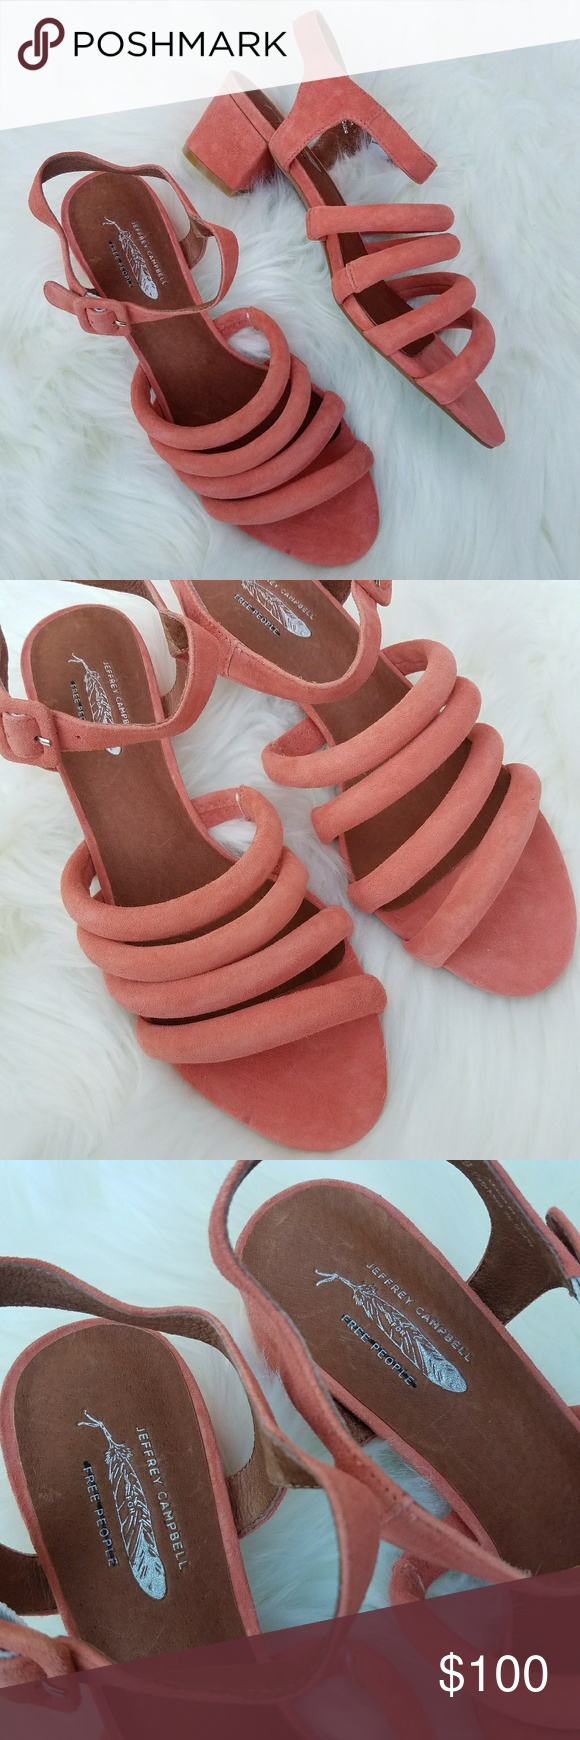 8ca7b96bb47 Free People  Jeffrey Campbell Clementine Sandals Amazing genuine suede  leather block heel sandals